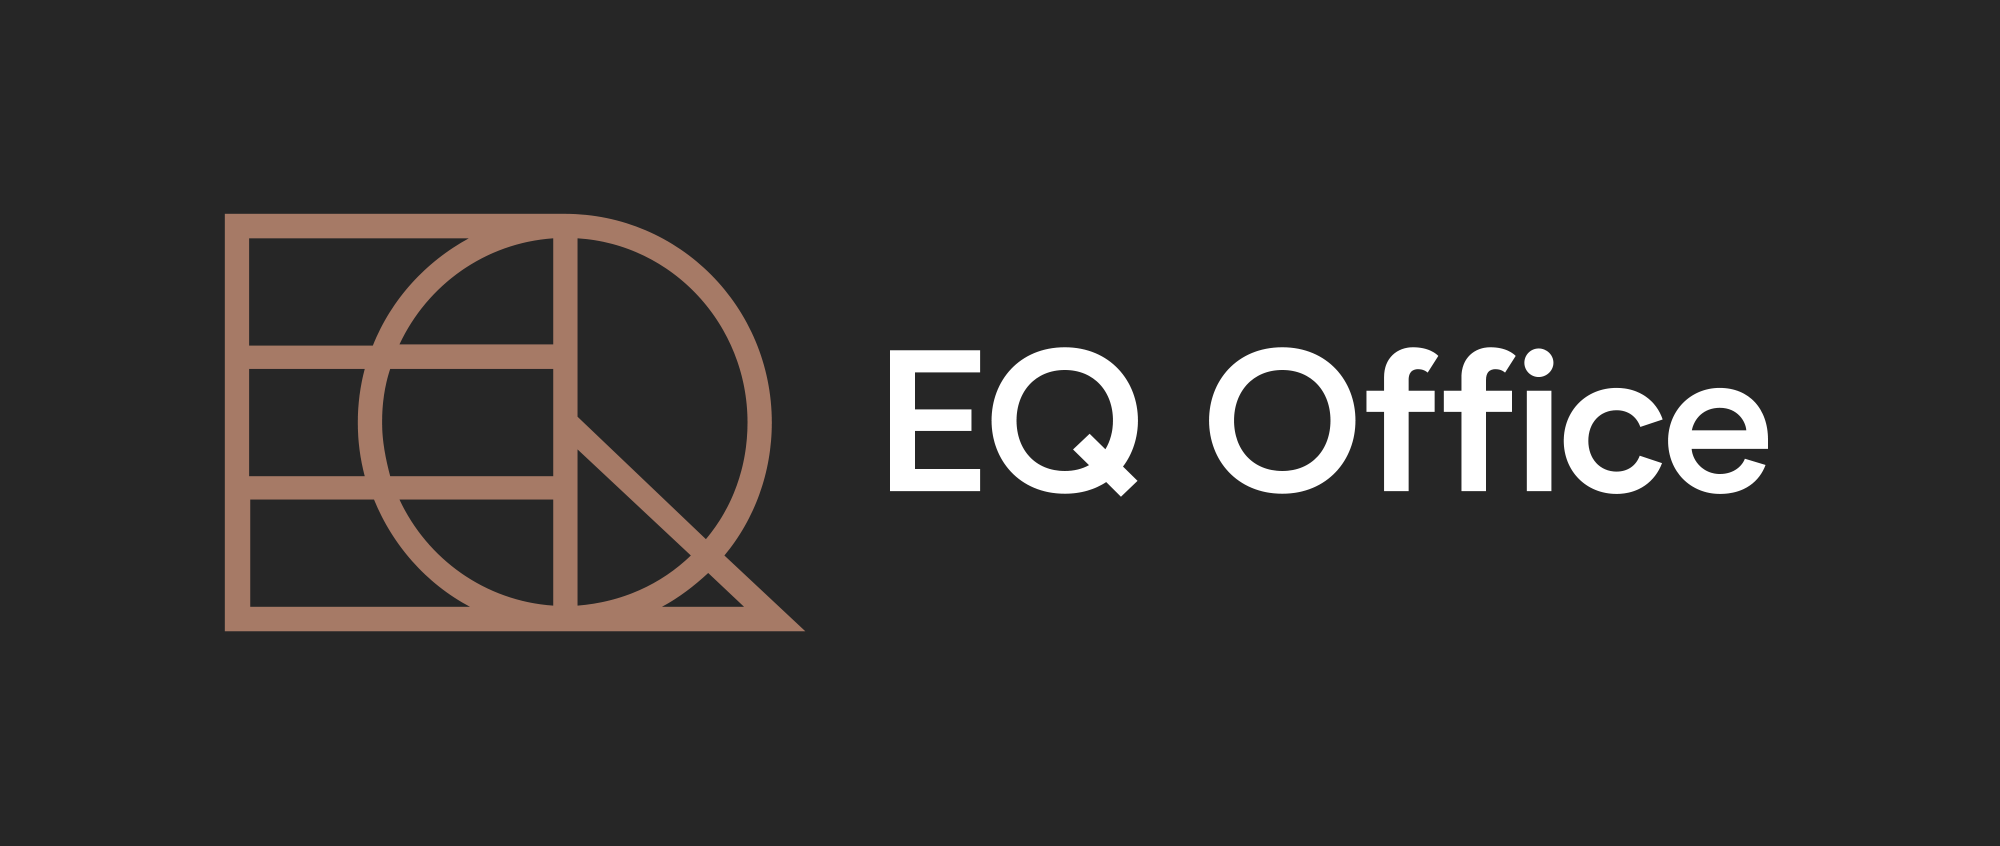 New Logo and Identity for EQ Office by Friends